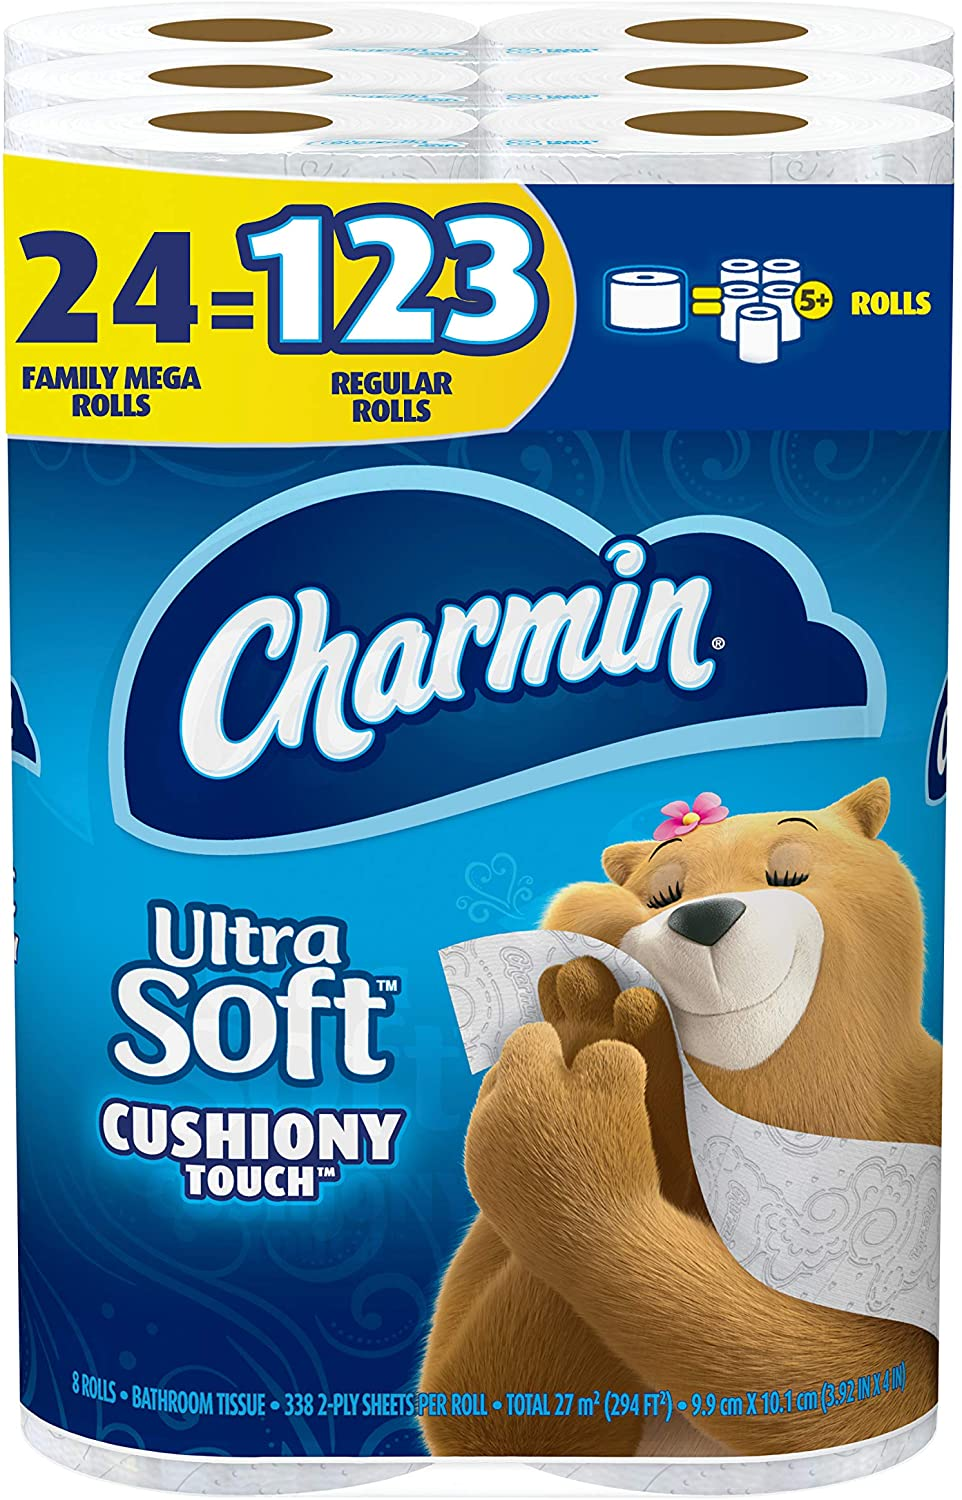 Charmin Ultra Soft Cushiony Touch Toilet Paper, 24-Rolls